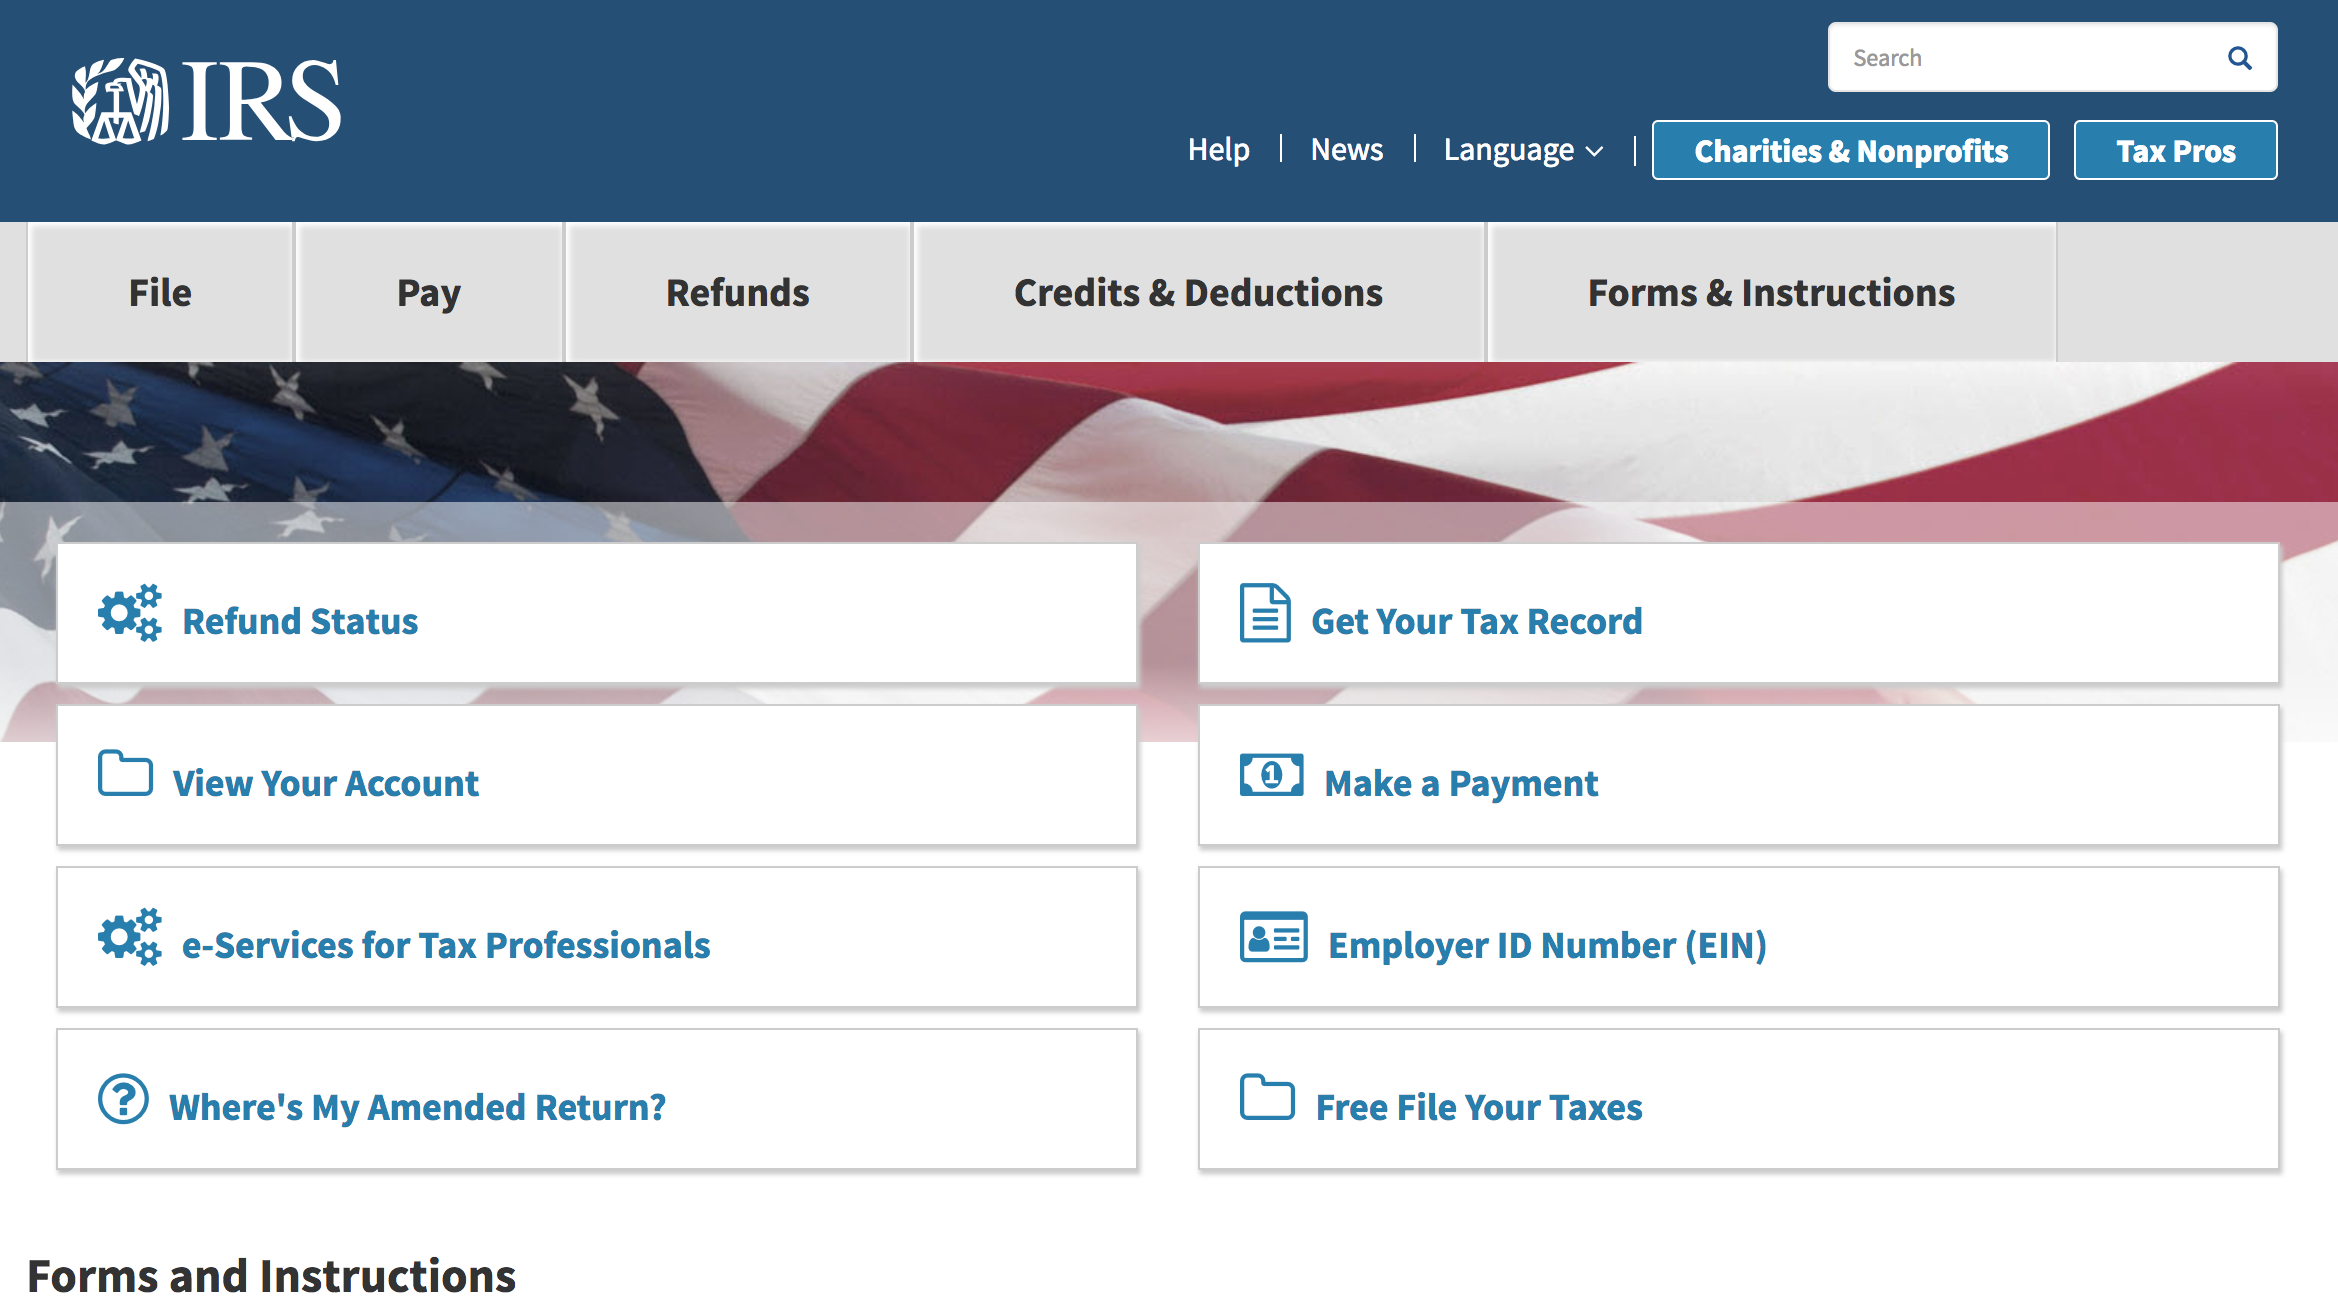 screenshot of the IRS homepage